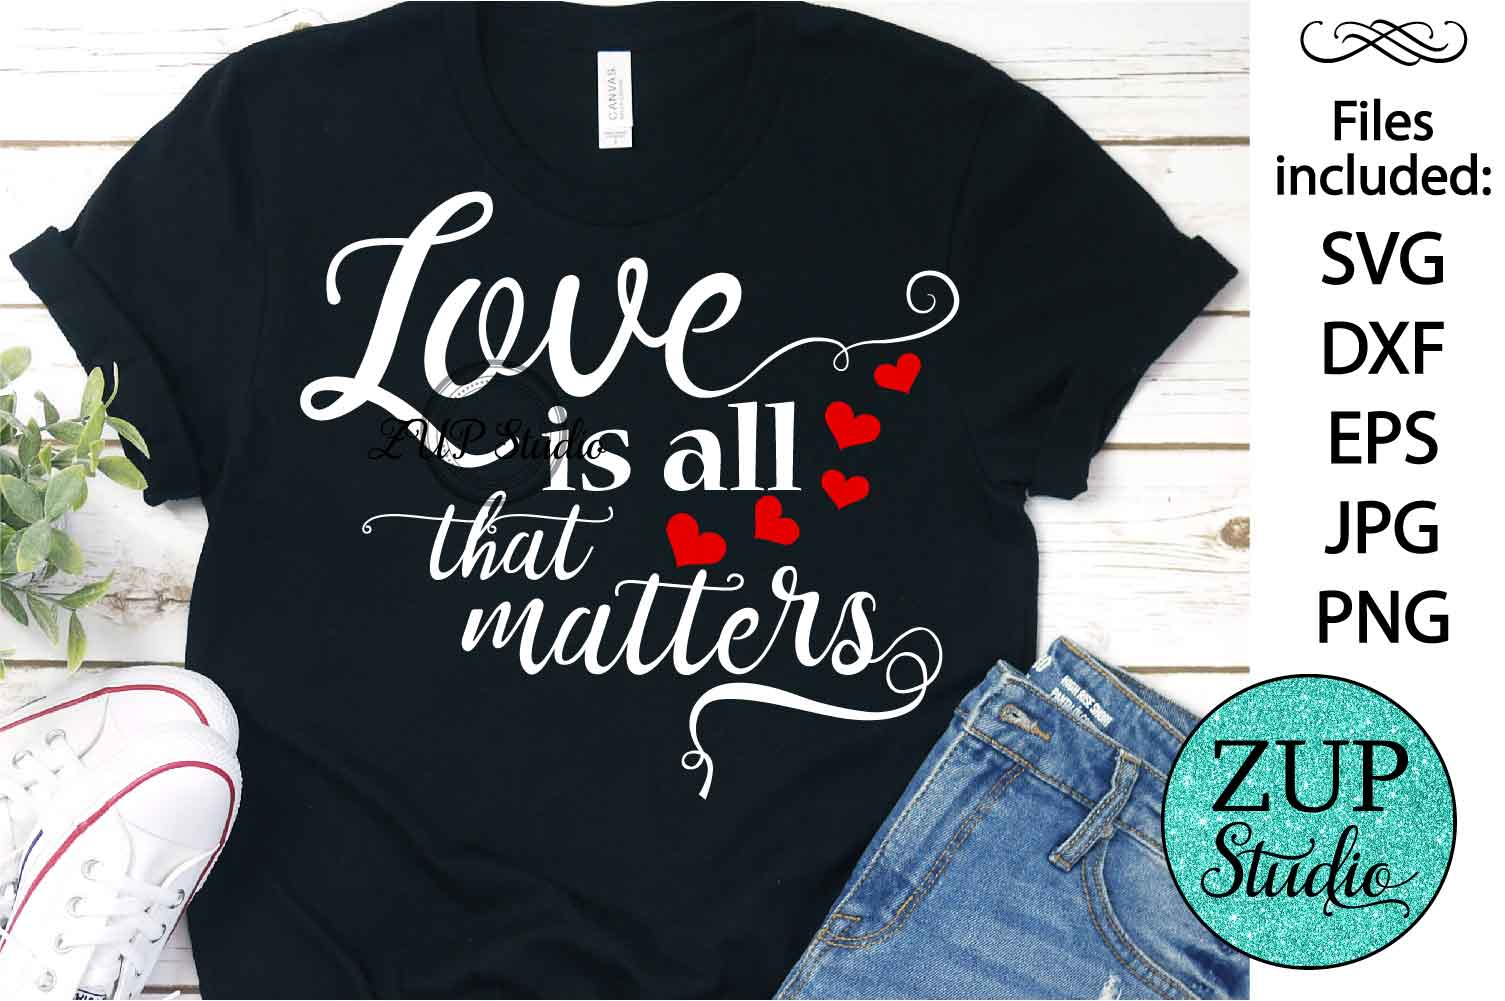 Love is all that matters Cutting files svg design 53 example image 1